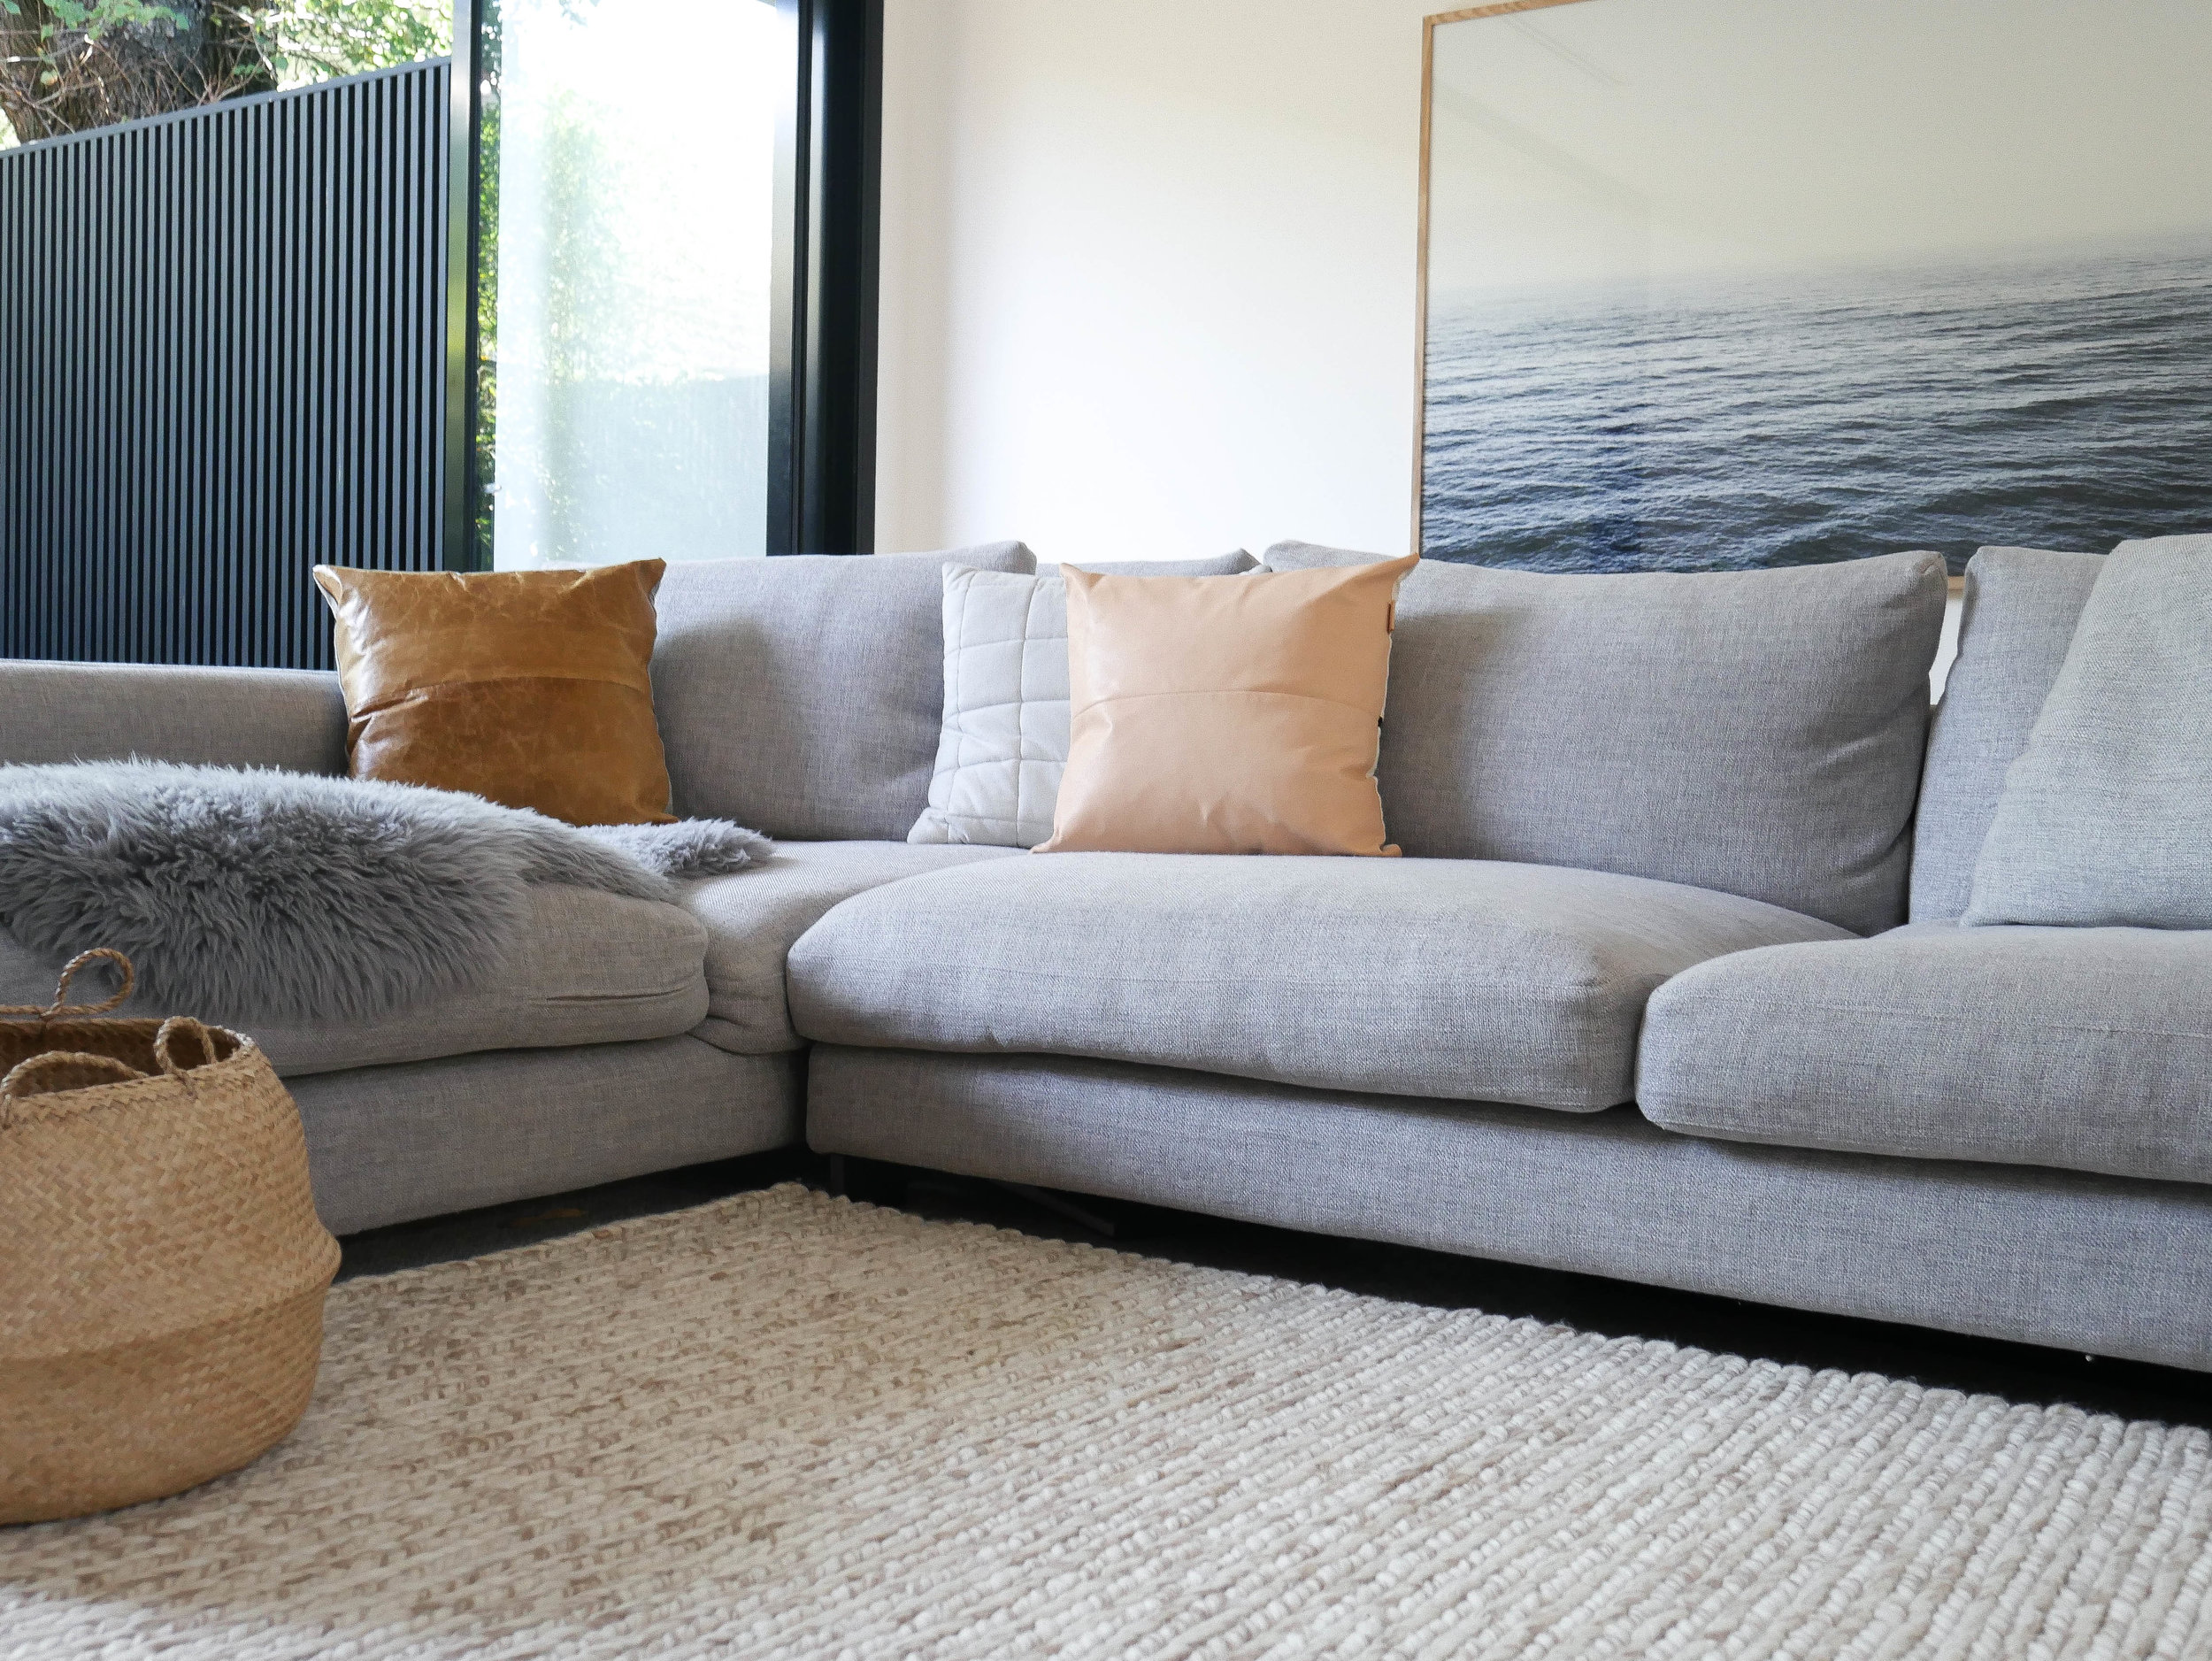 For my lounge I wanted neutral and earthy tones with lots of texture, so I went for  Links Modern.